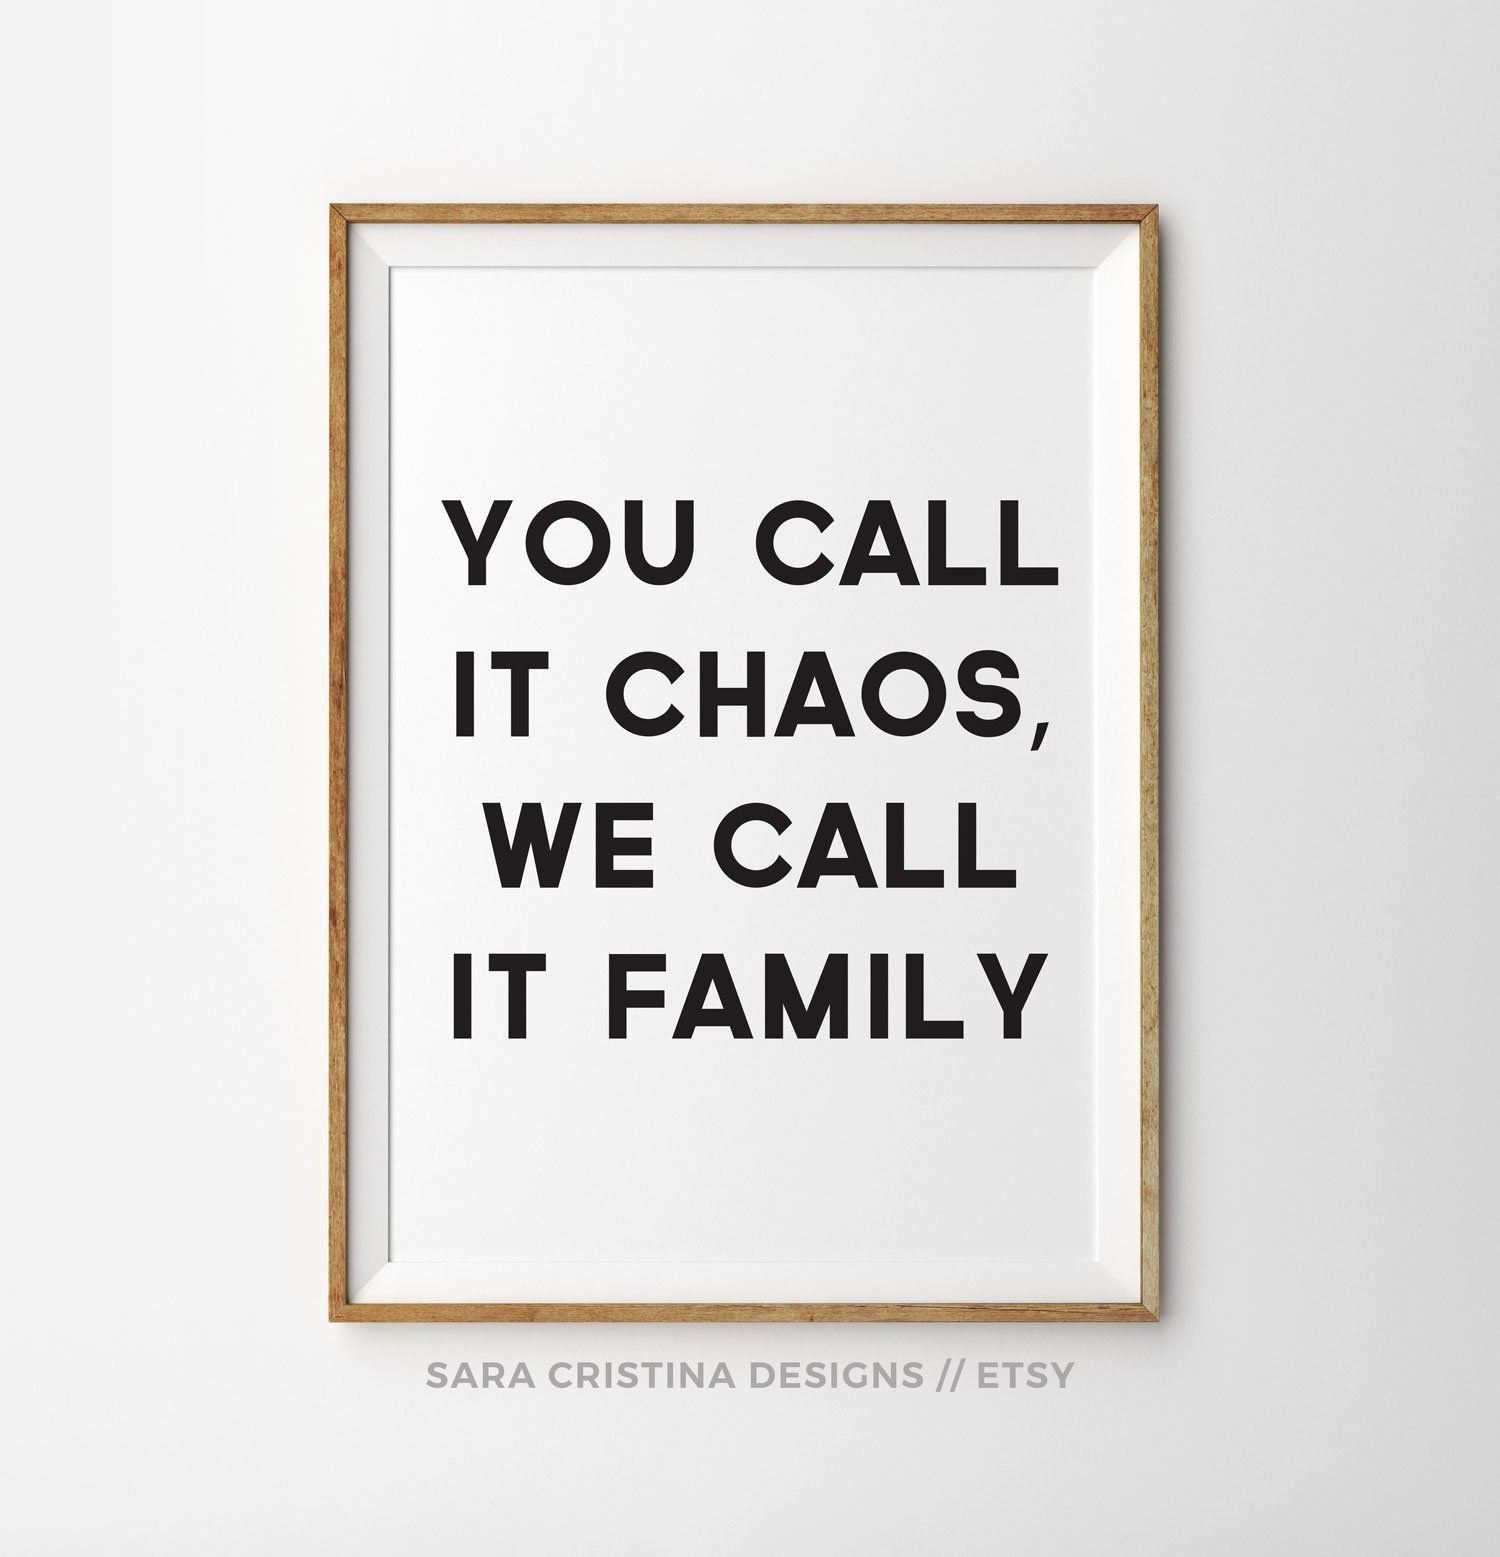 You Call It Chaos We Call It Family Family Quotes Big Family Quotes Funny Family Quotes Home Living Room Wall Art Busy Family Quotes Family Quotes Funny Big Family Quotes Home